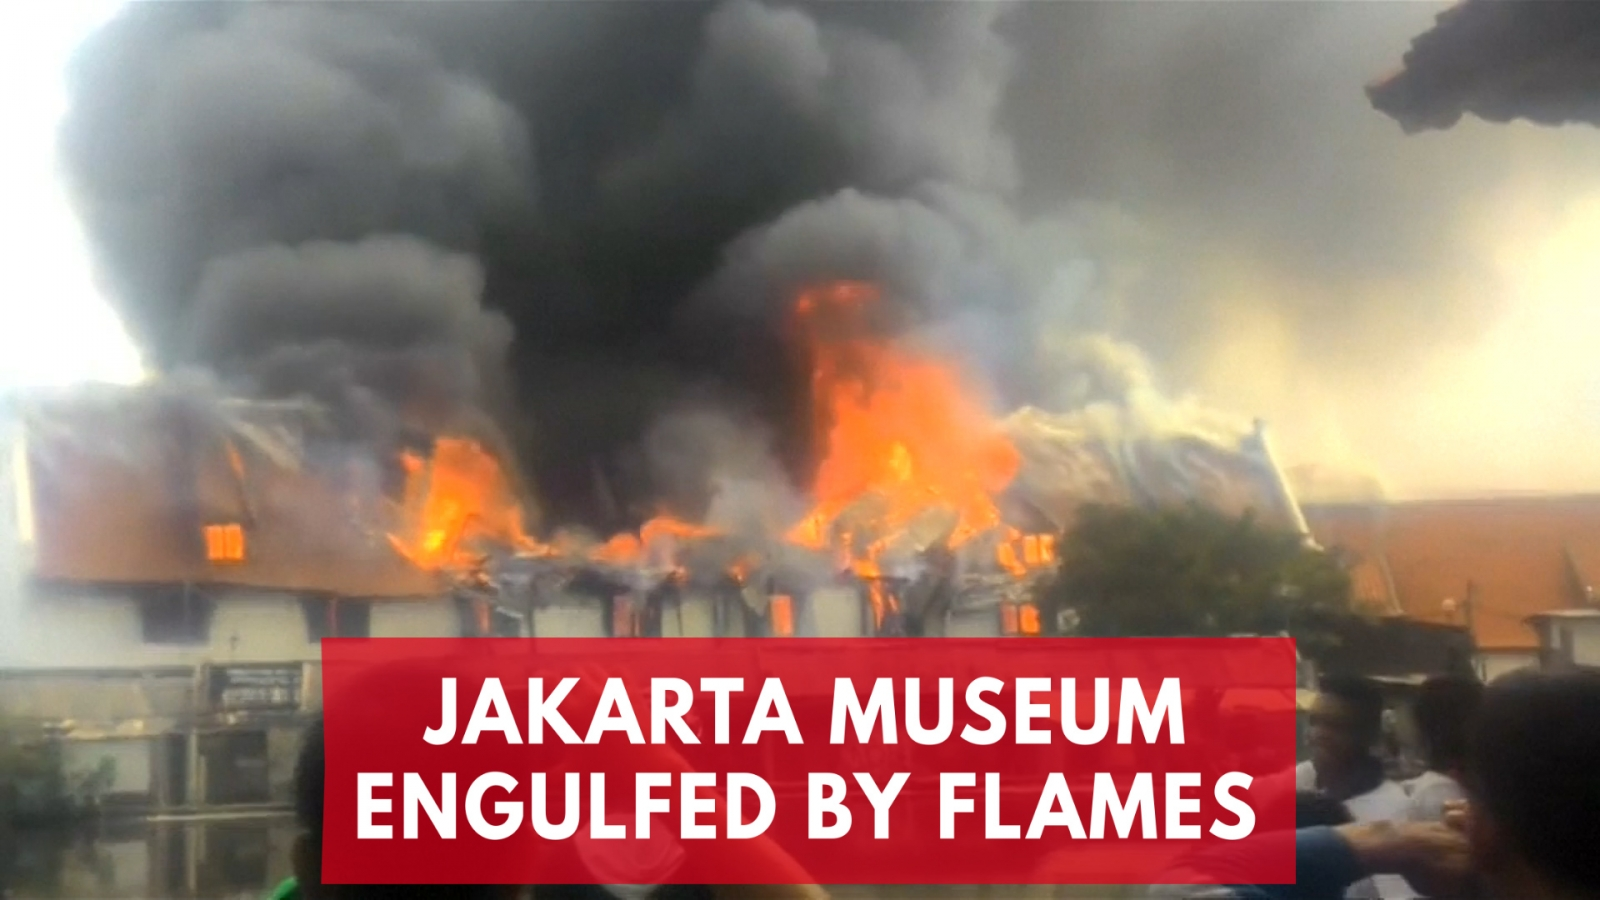 jakarta-museum-engulfed-by-flames